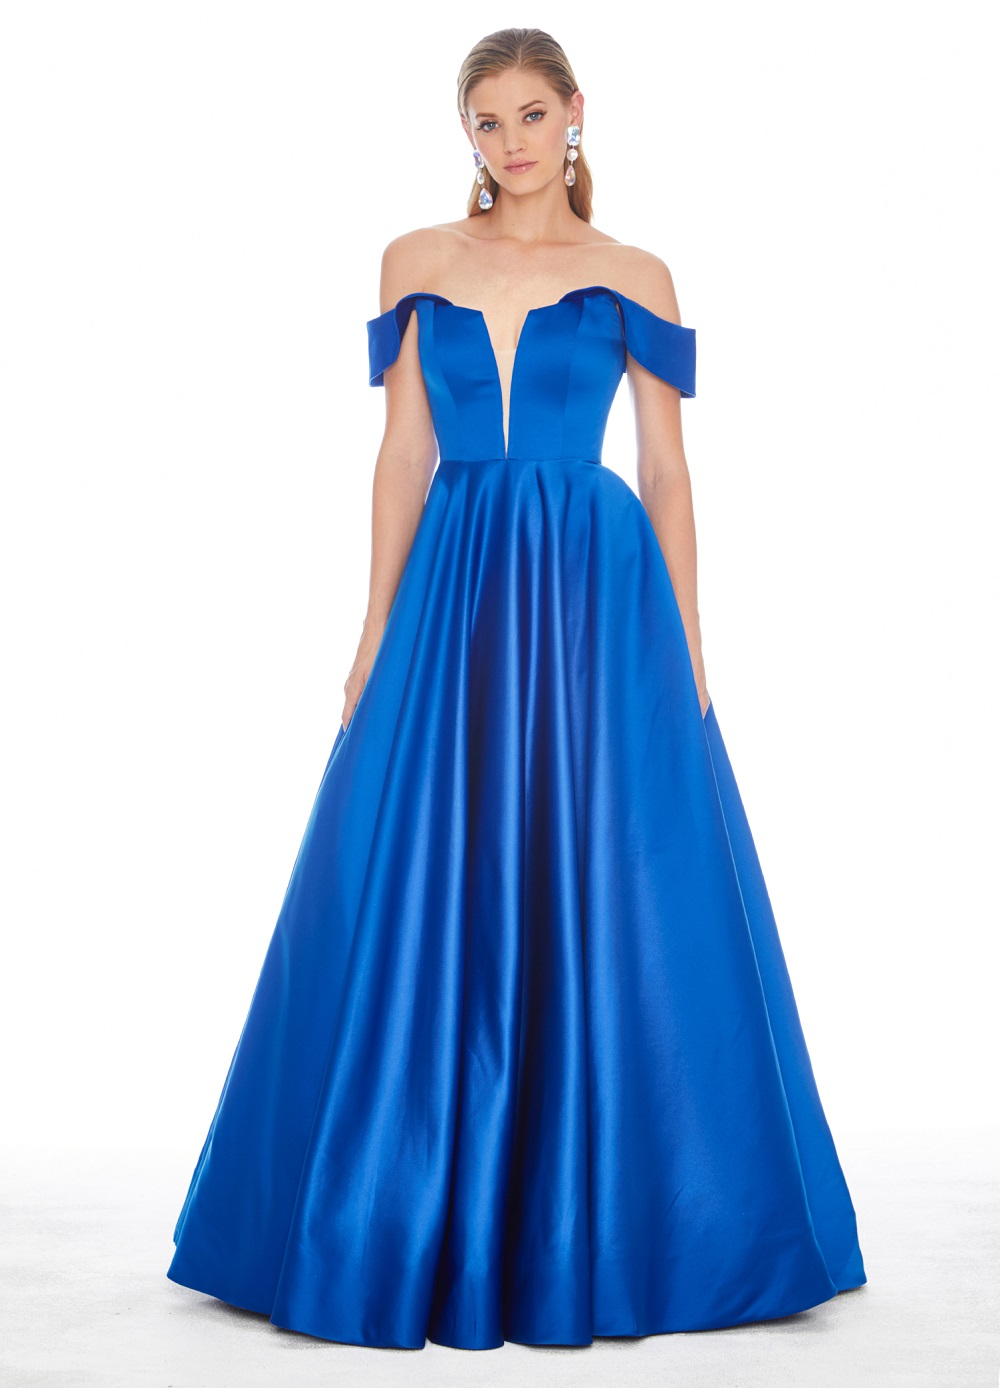 Ashley Lauren 1399 Satin Off Shoulder A-line Formal Dress